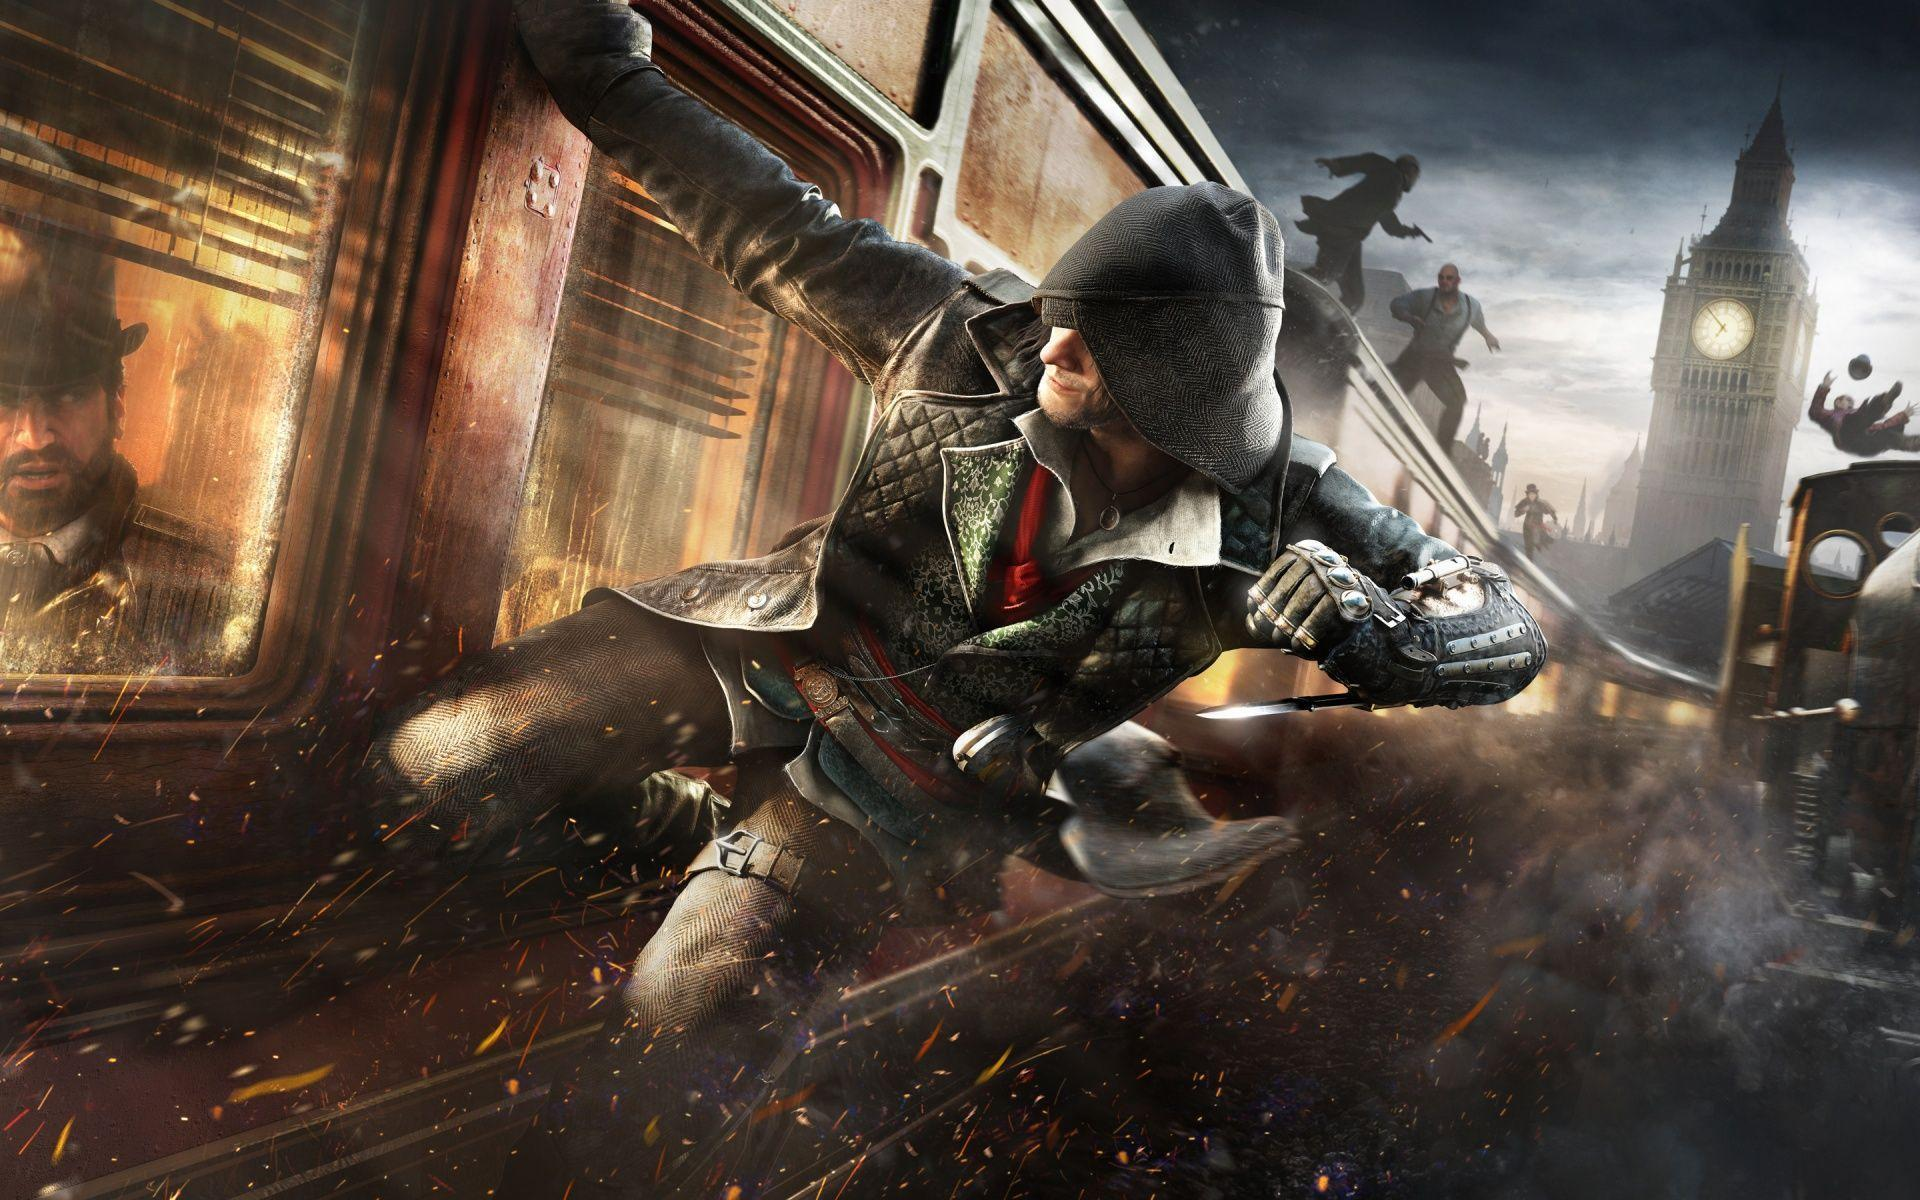 Download HD Assassins Creed Syndicate Game Wallpapers